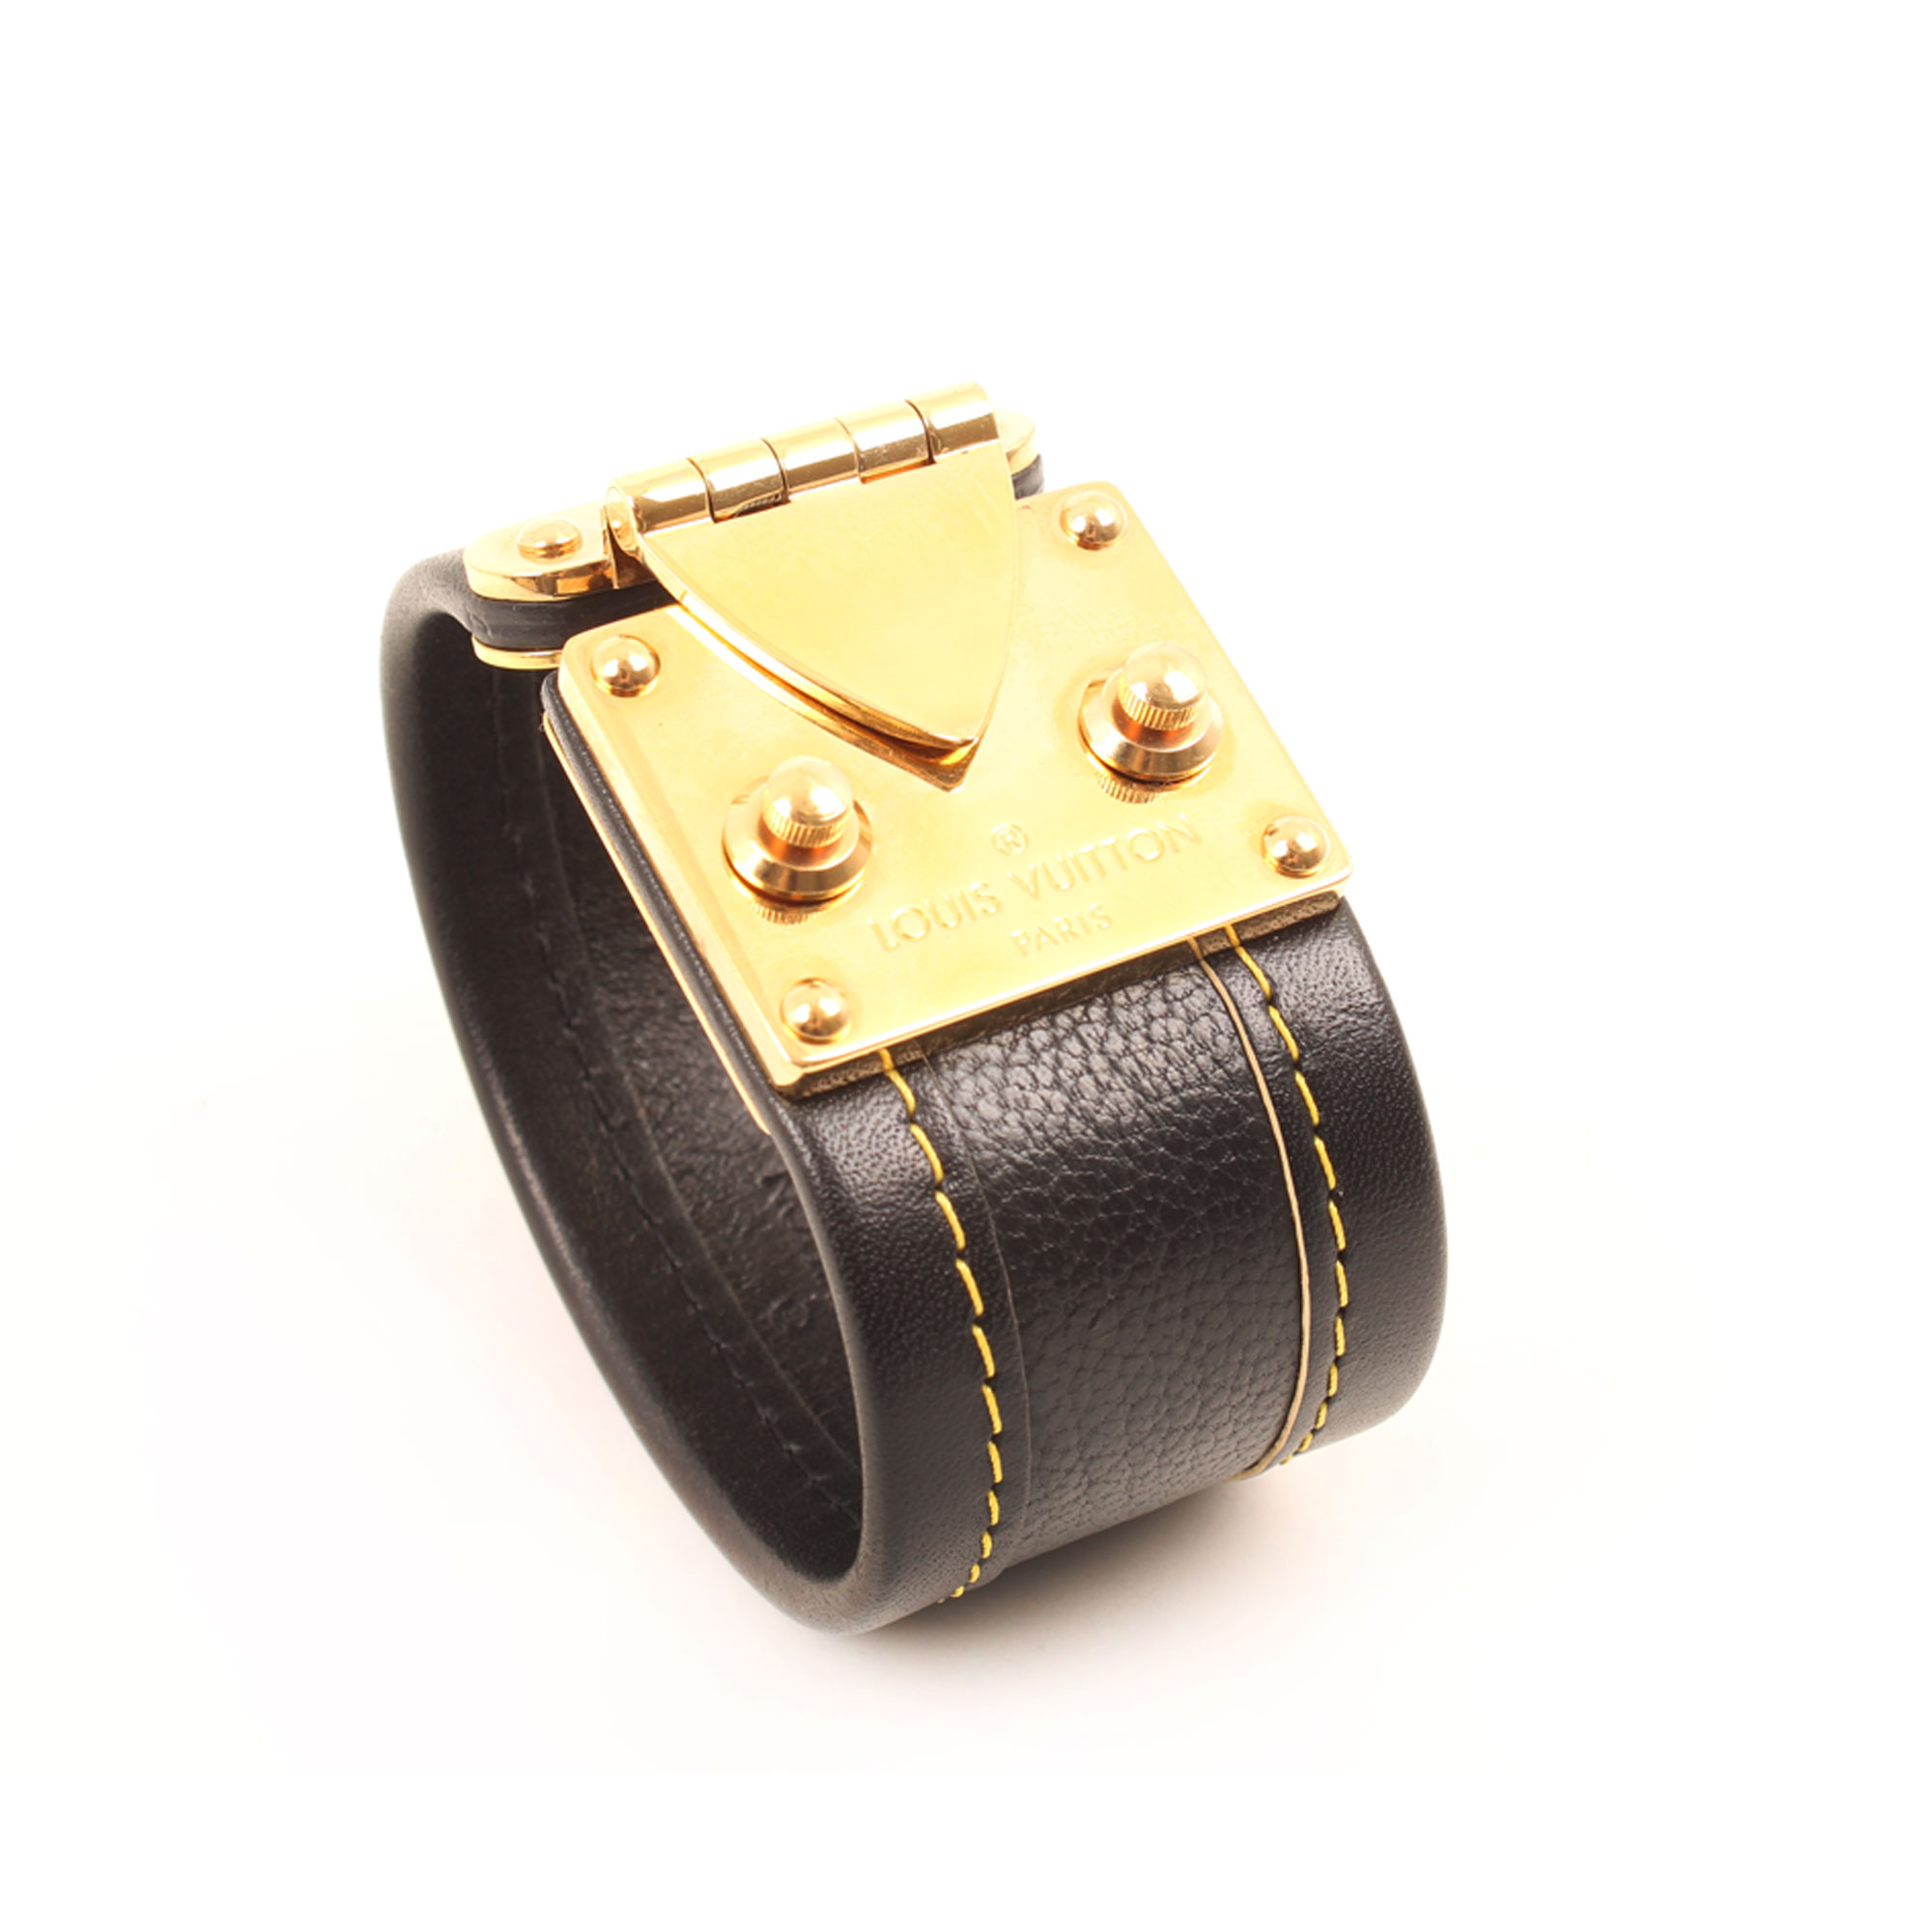 Imagen general 2 del bracelet louis vuitton suhali slock black gold